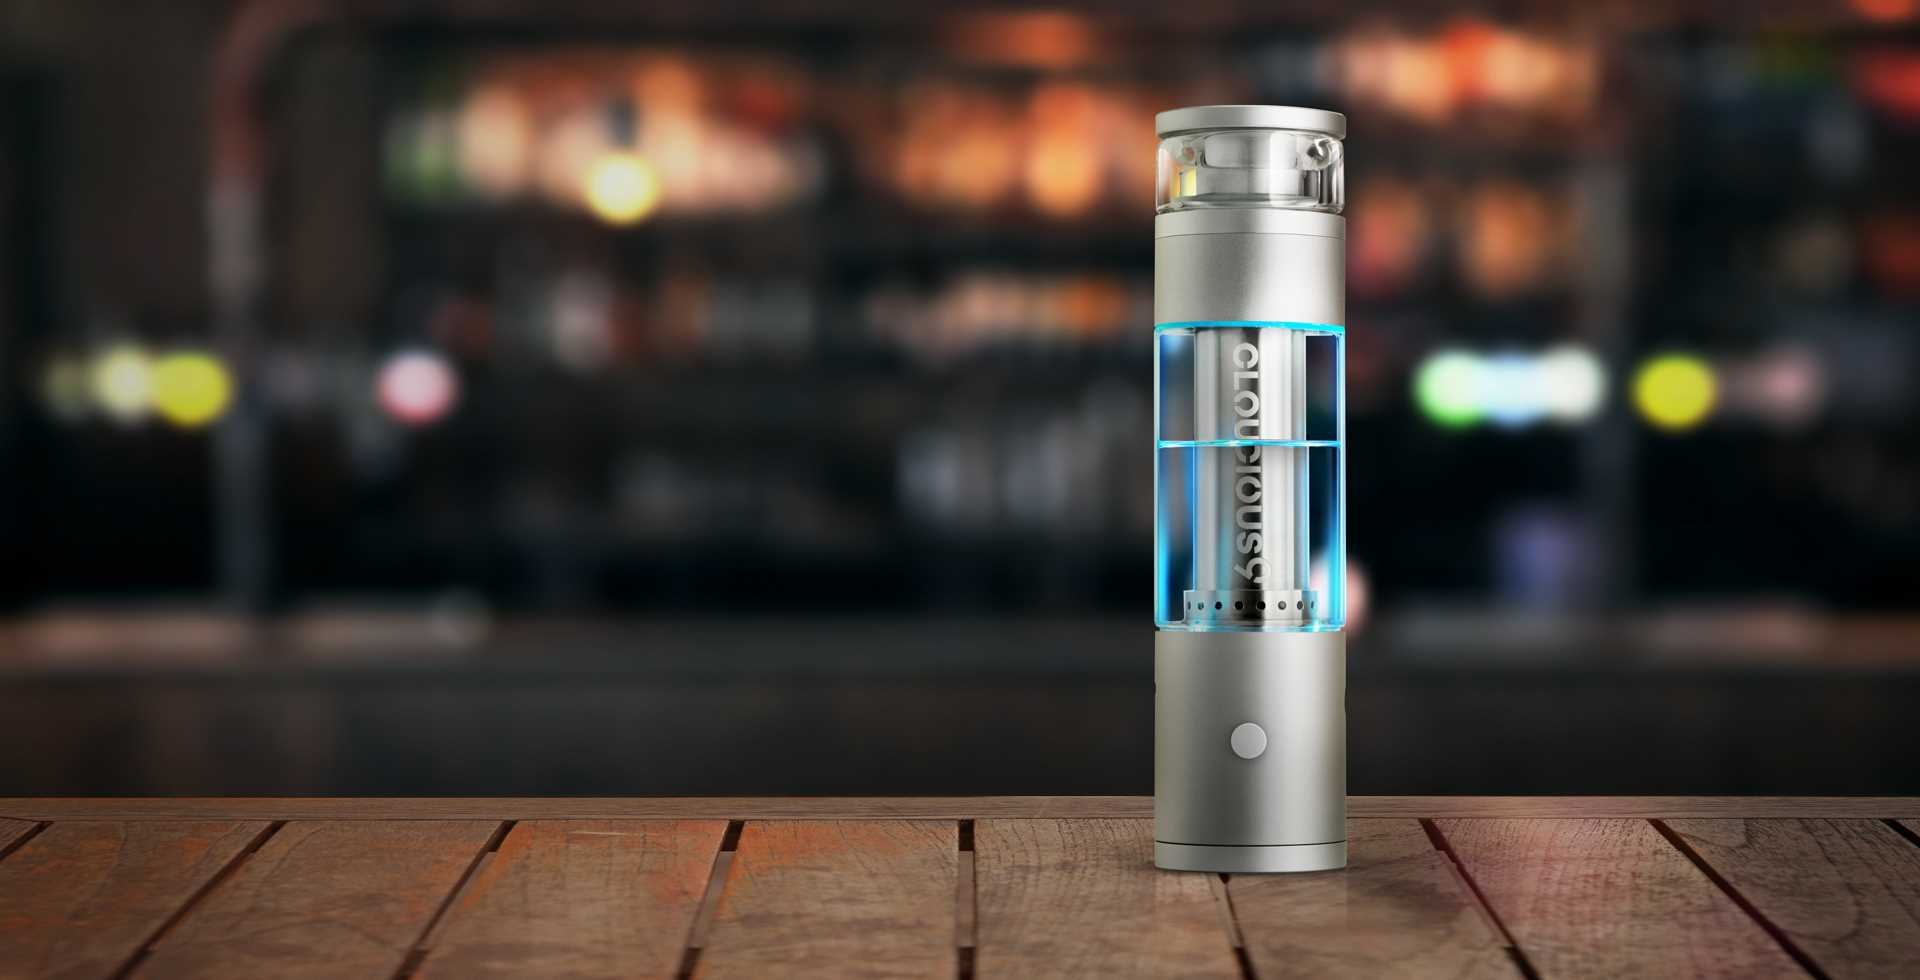 Apple portable vaporizer could look a bit like the hydrology 9 vaporizer